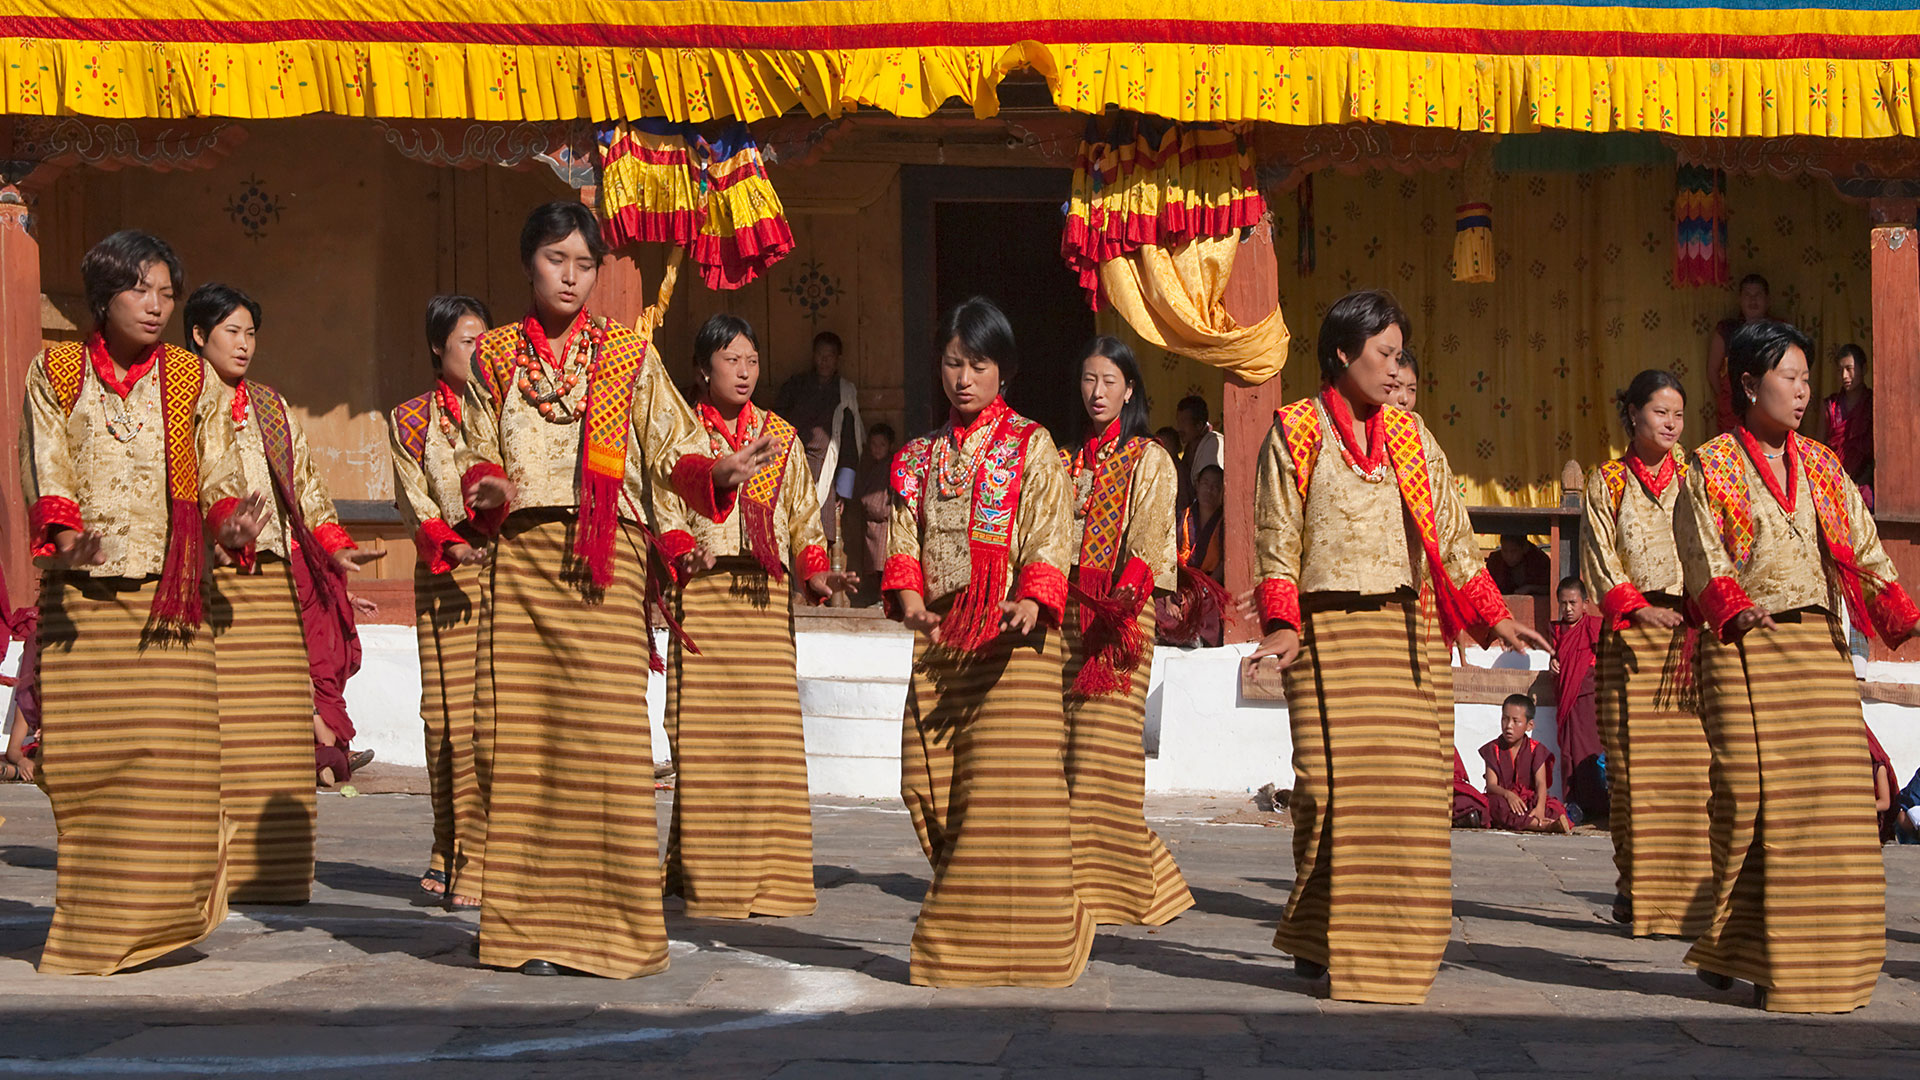 Female dance performance at dzong in Bhutan